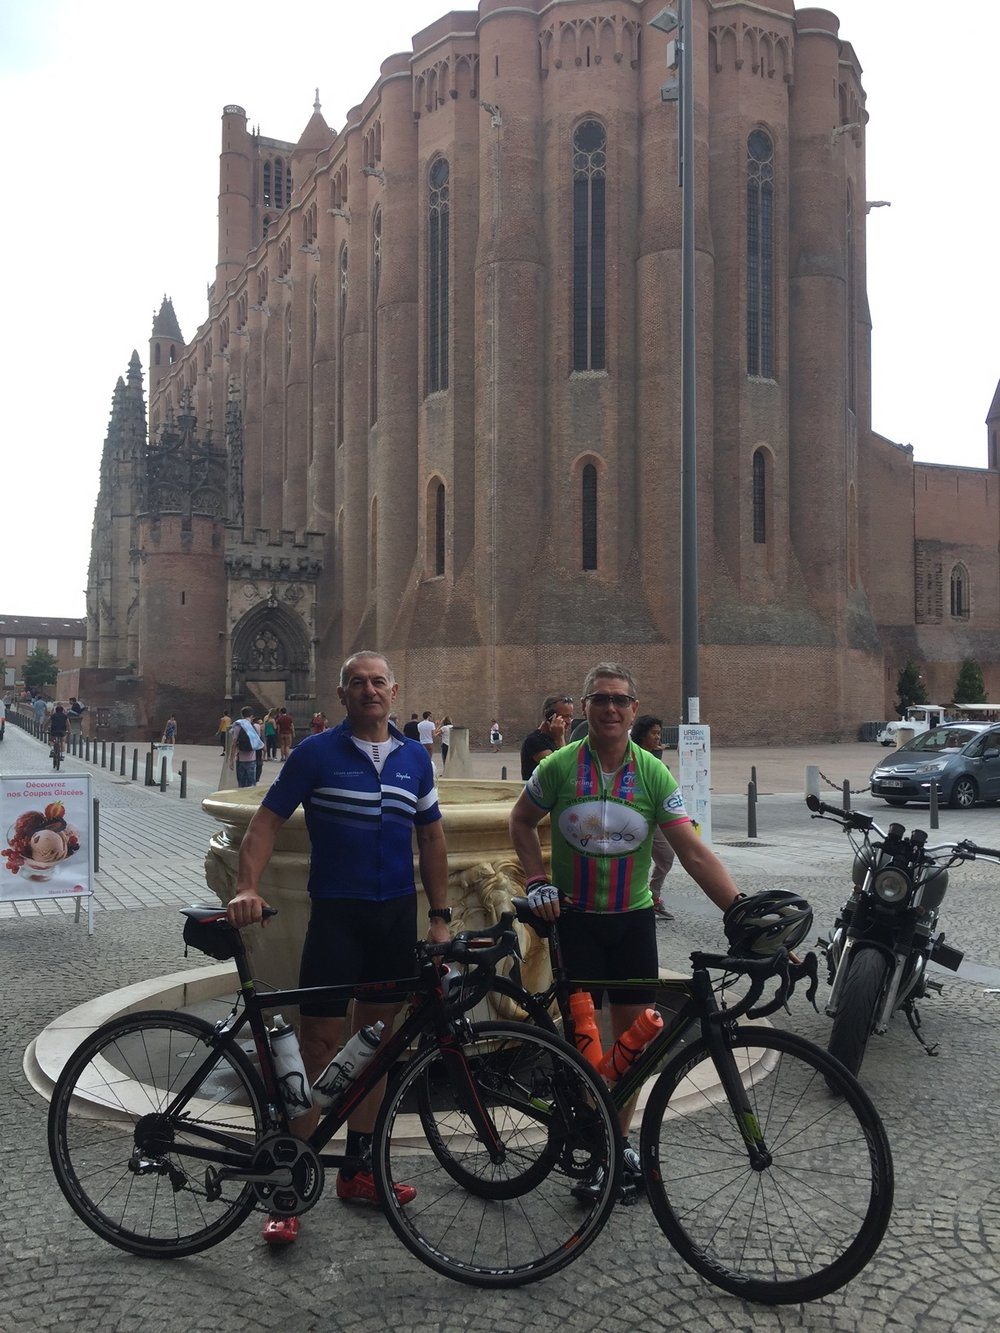 UCI Grand Fondo World Championships 17 in Albi France - Anthony Colantonio (BiciSport Master) teamed up with Peter Budd (Griffith CC) at the Albi Cathedral